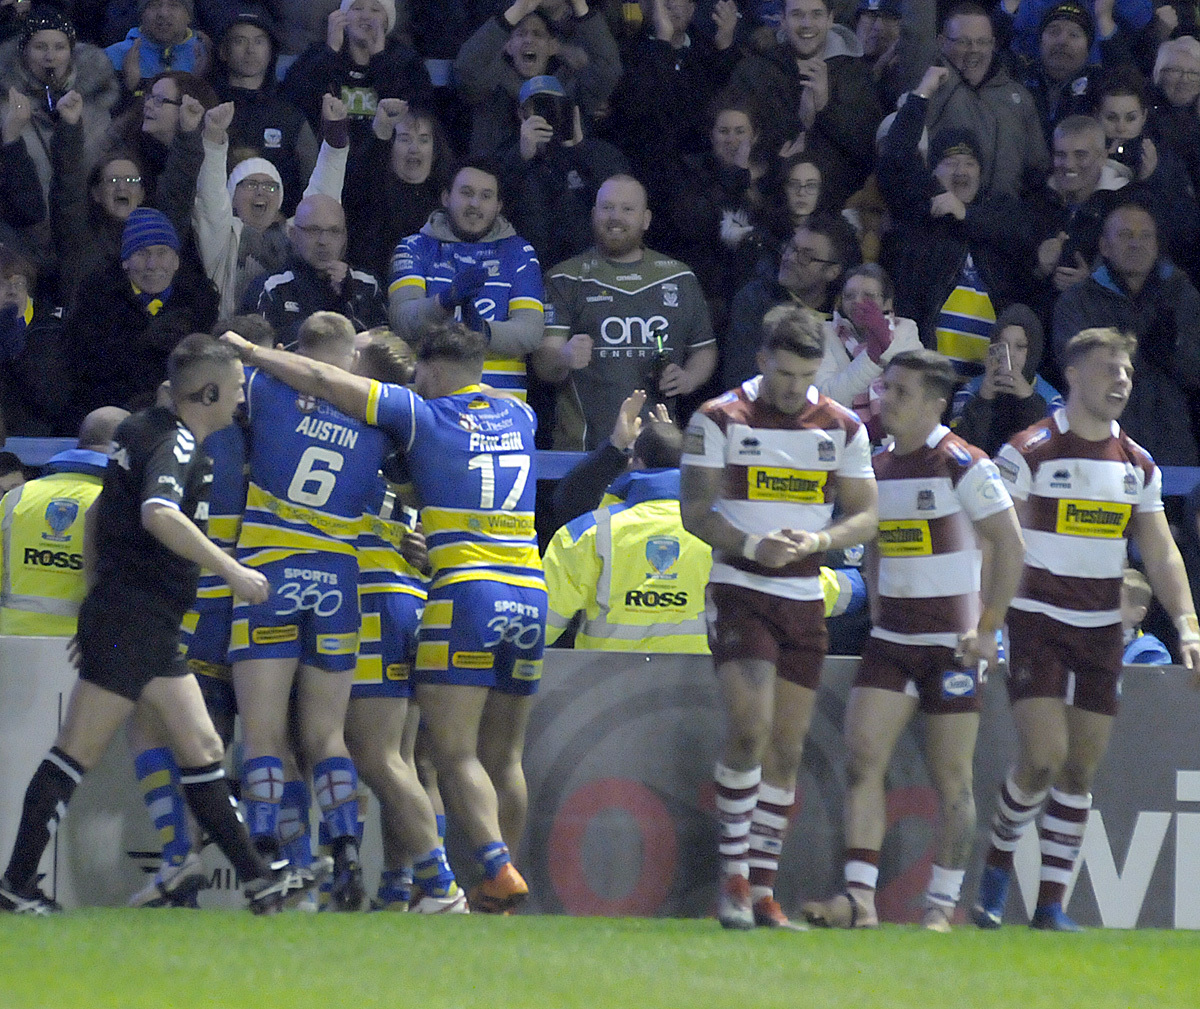 Warrington and Wigan have already met once this season. Picture by Mike Boden